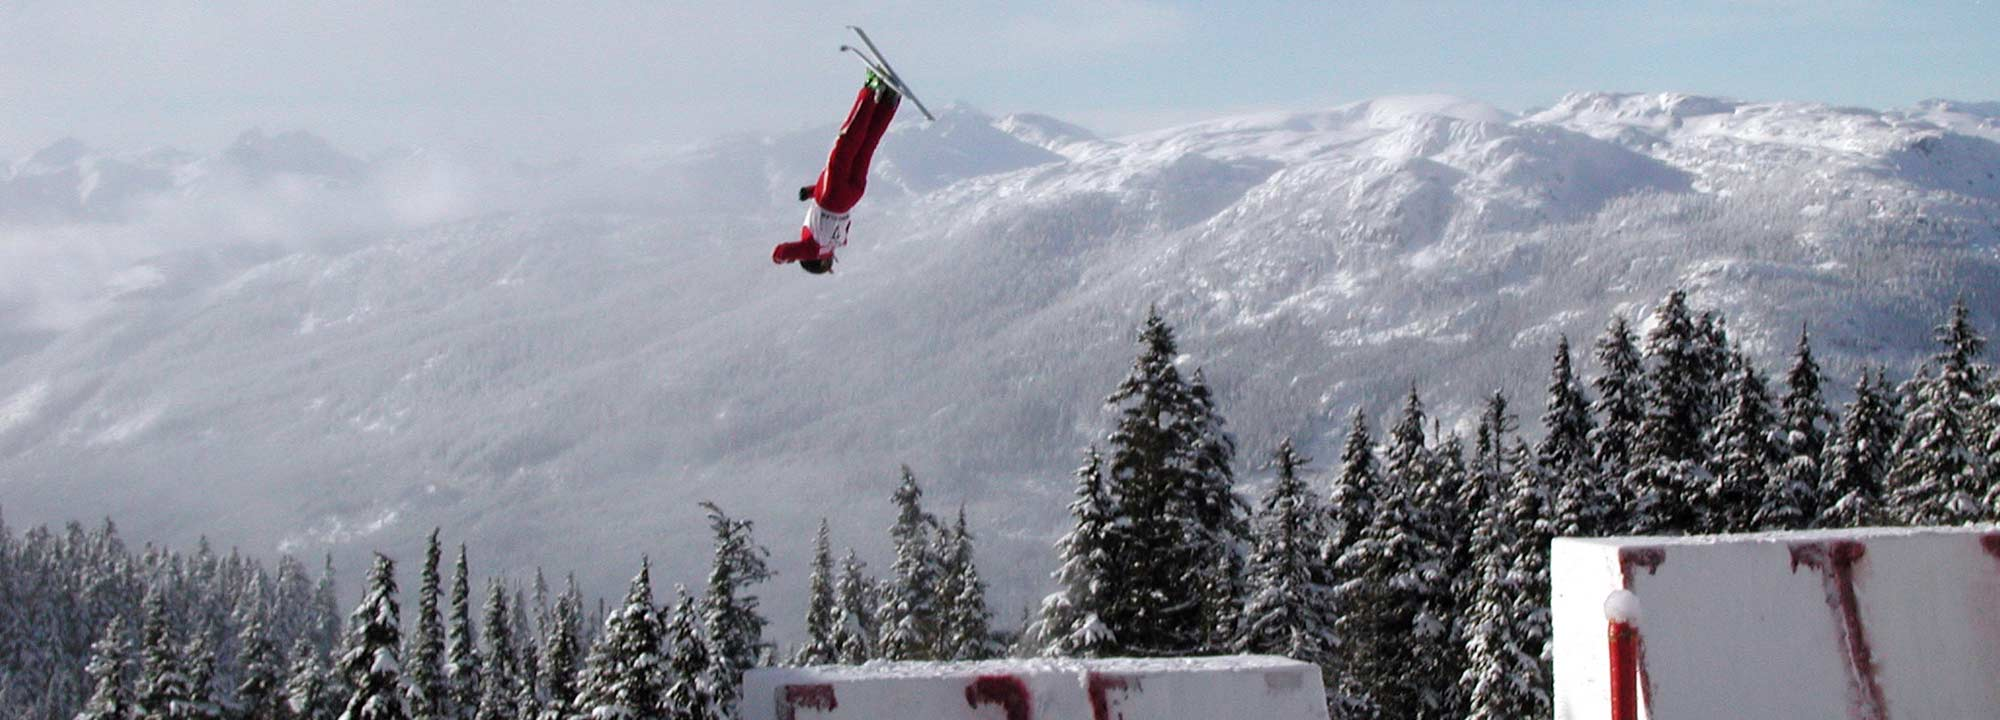 Aerial ski jumper in flight